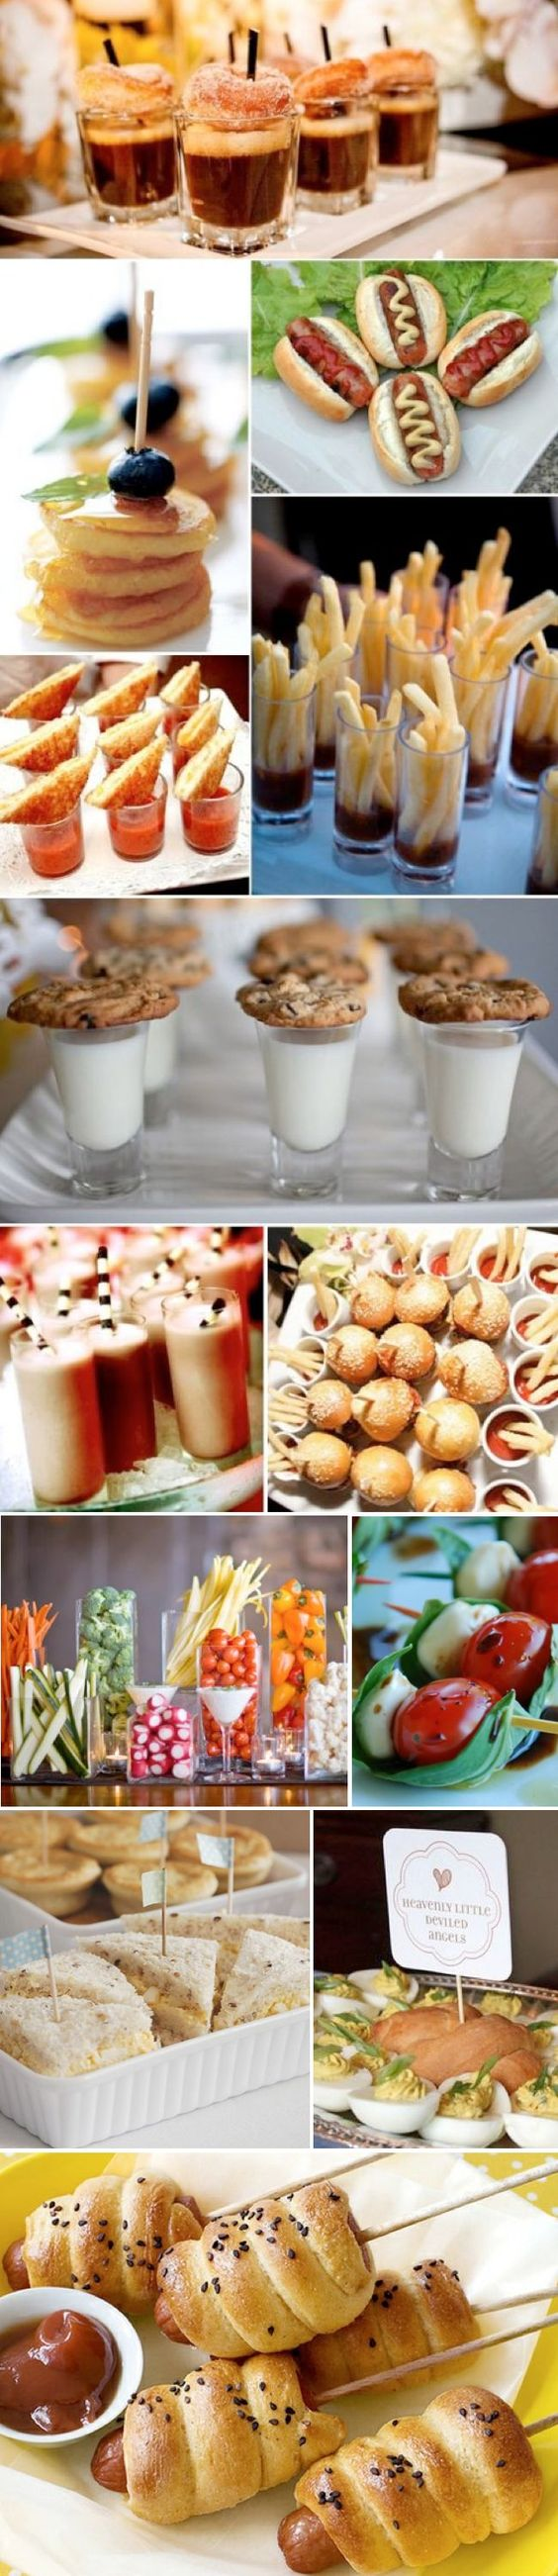 Wedding Buffet Menu Ideas Cheap 鈥?Wedding Ideas, Wedding Trends, and Wedding Galleries: